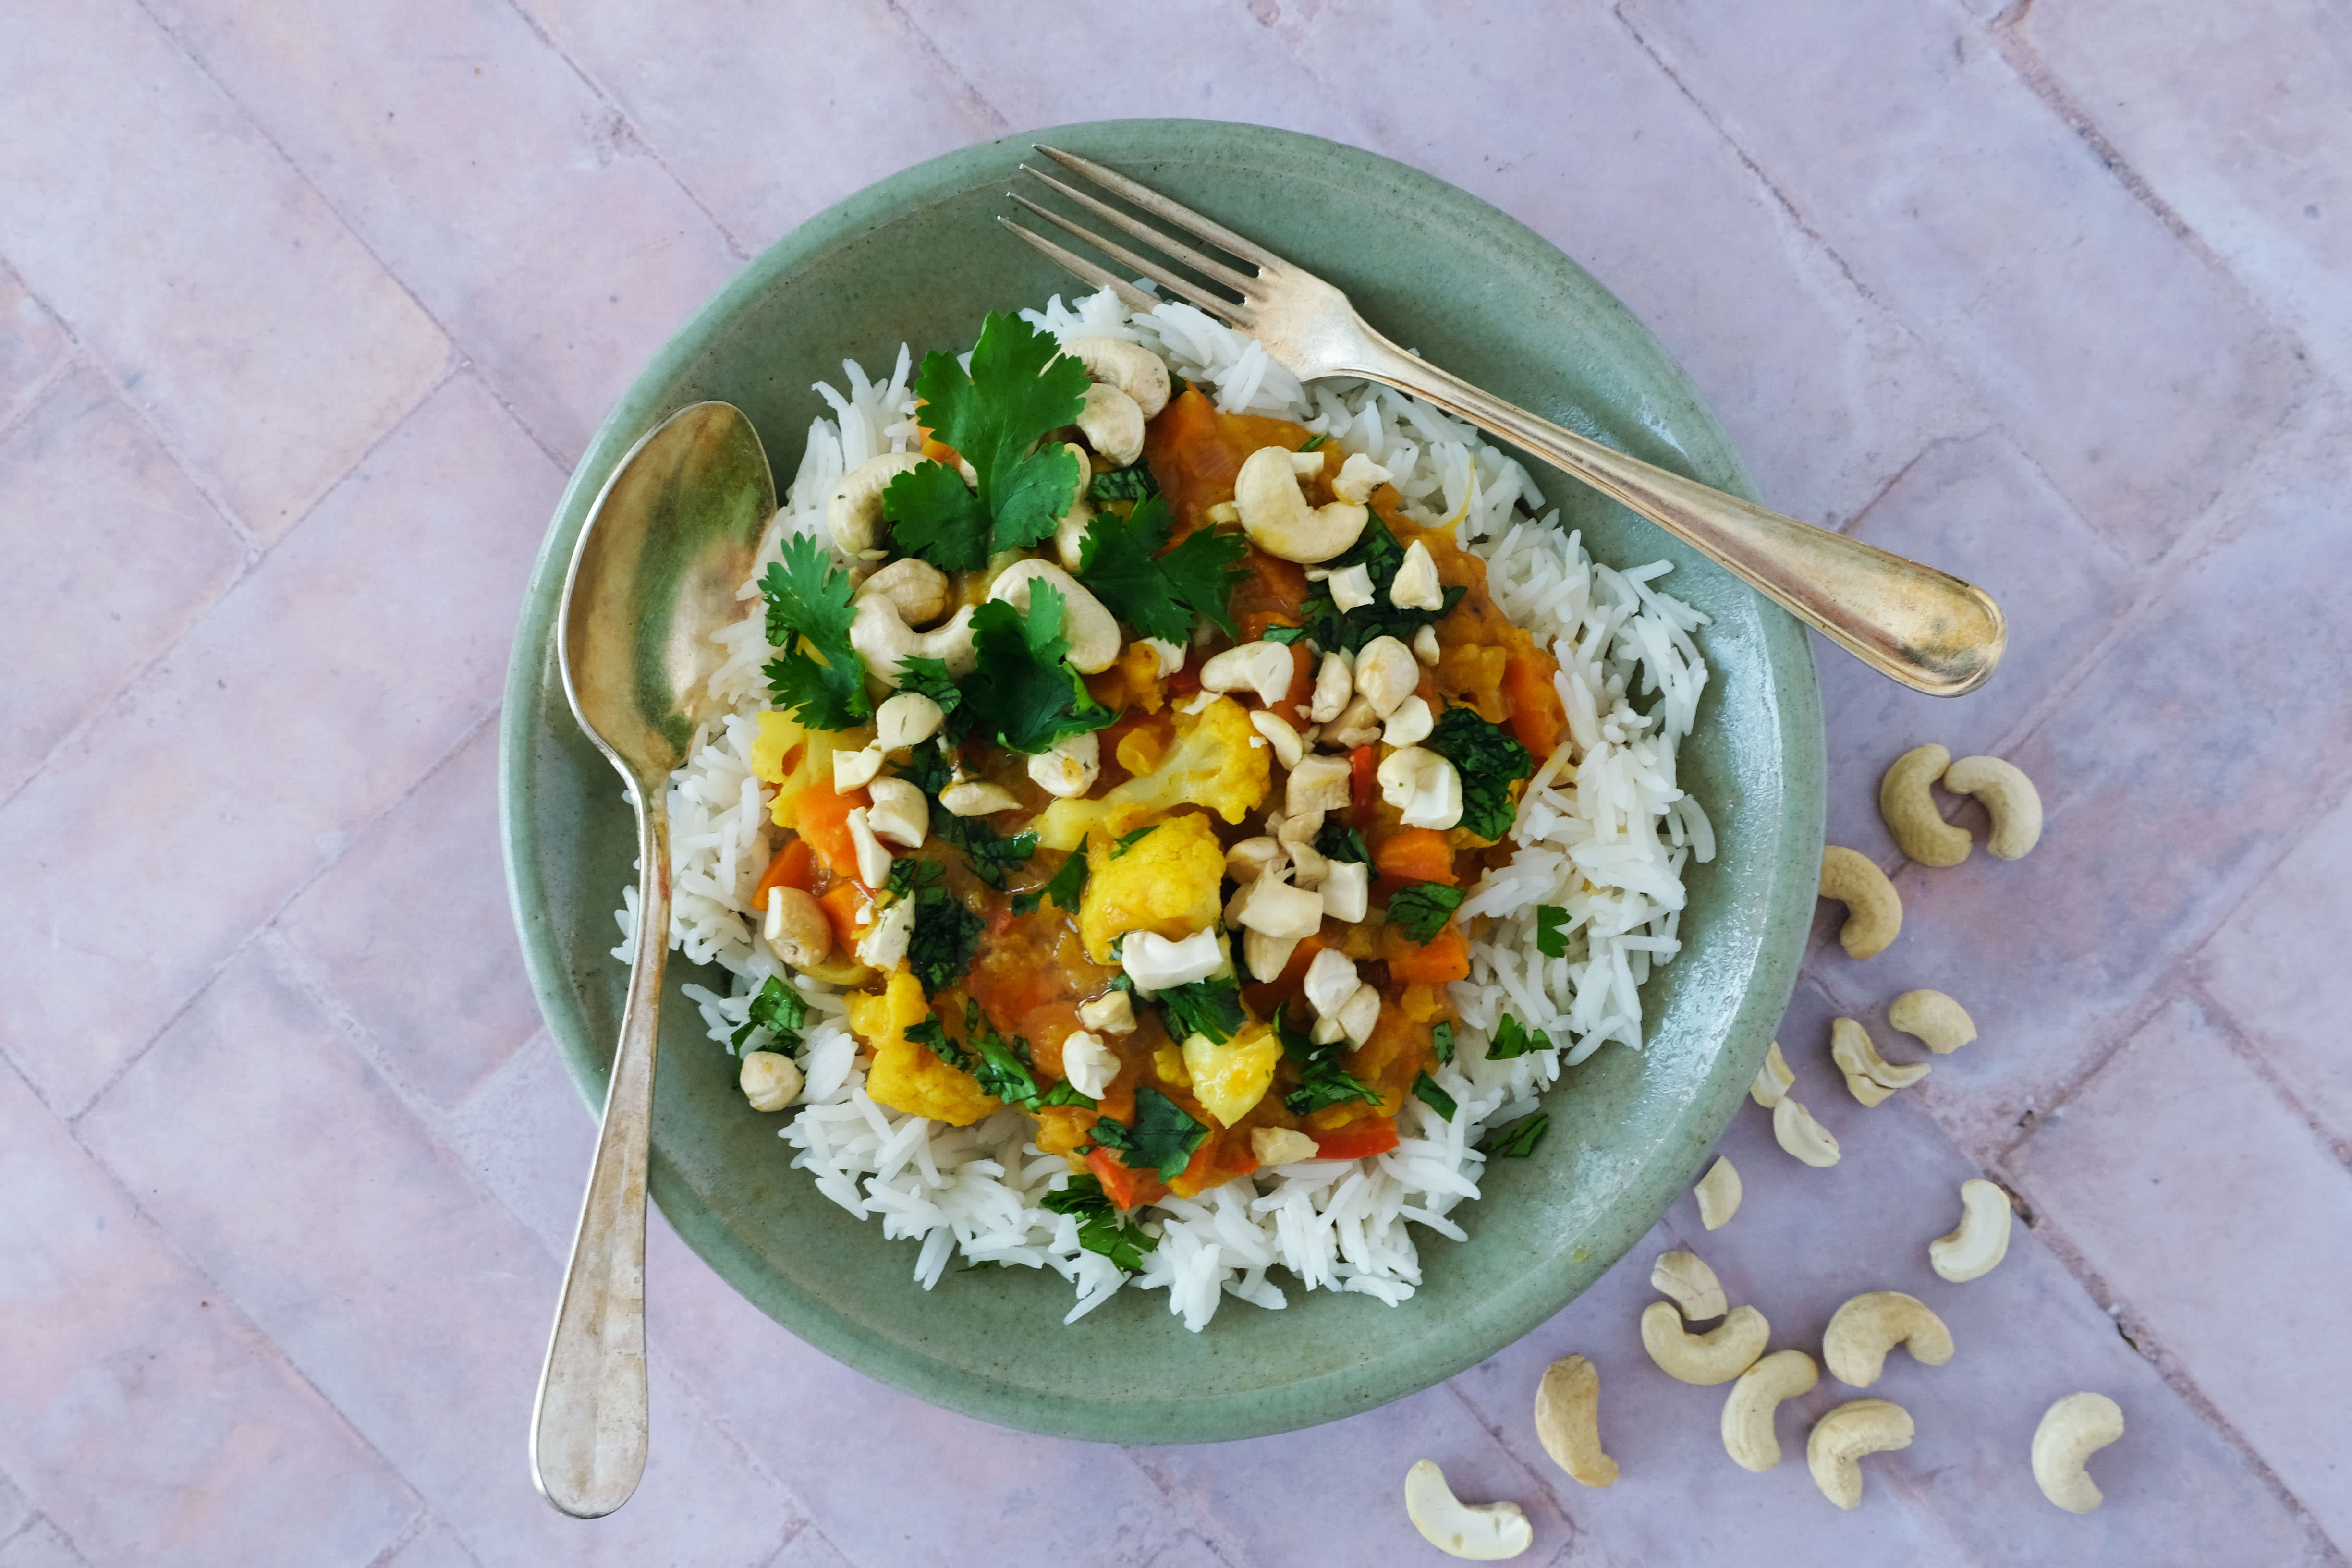 Sri Lankan Lentil and Vegetable Curry with Basmati Rice